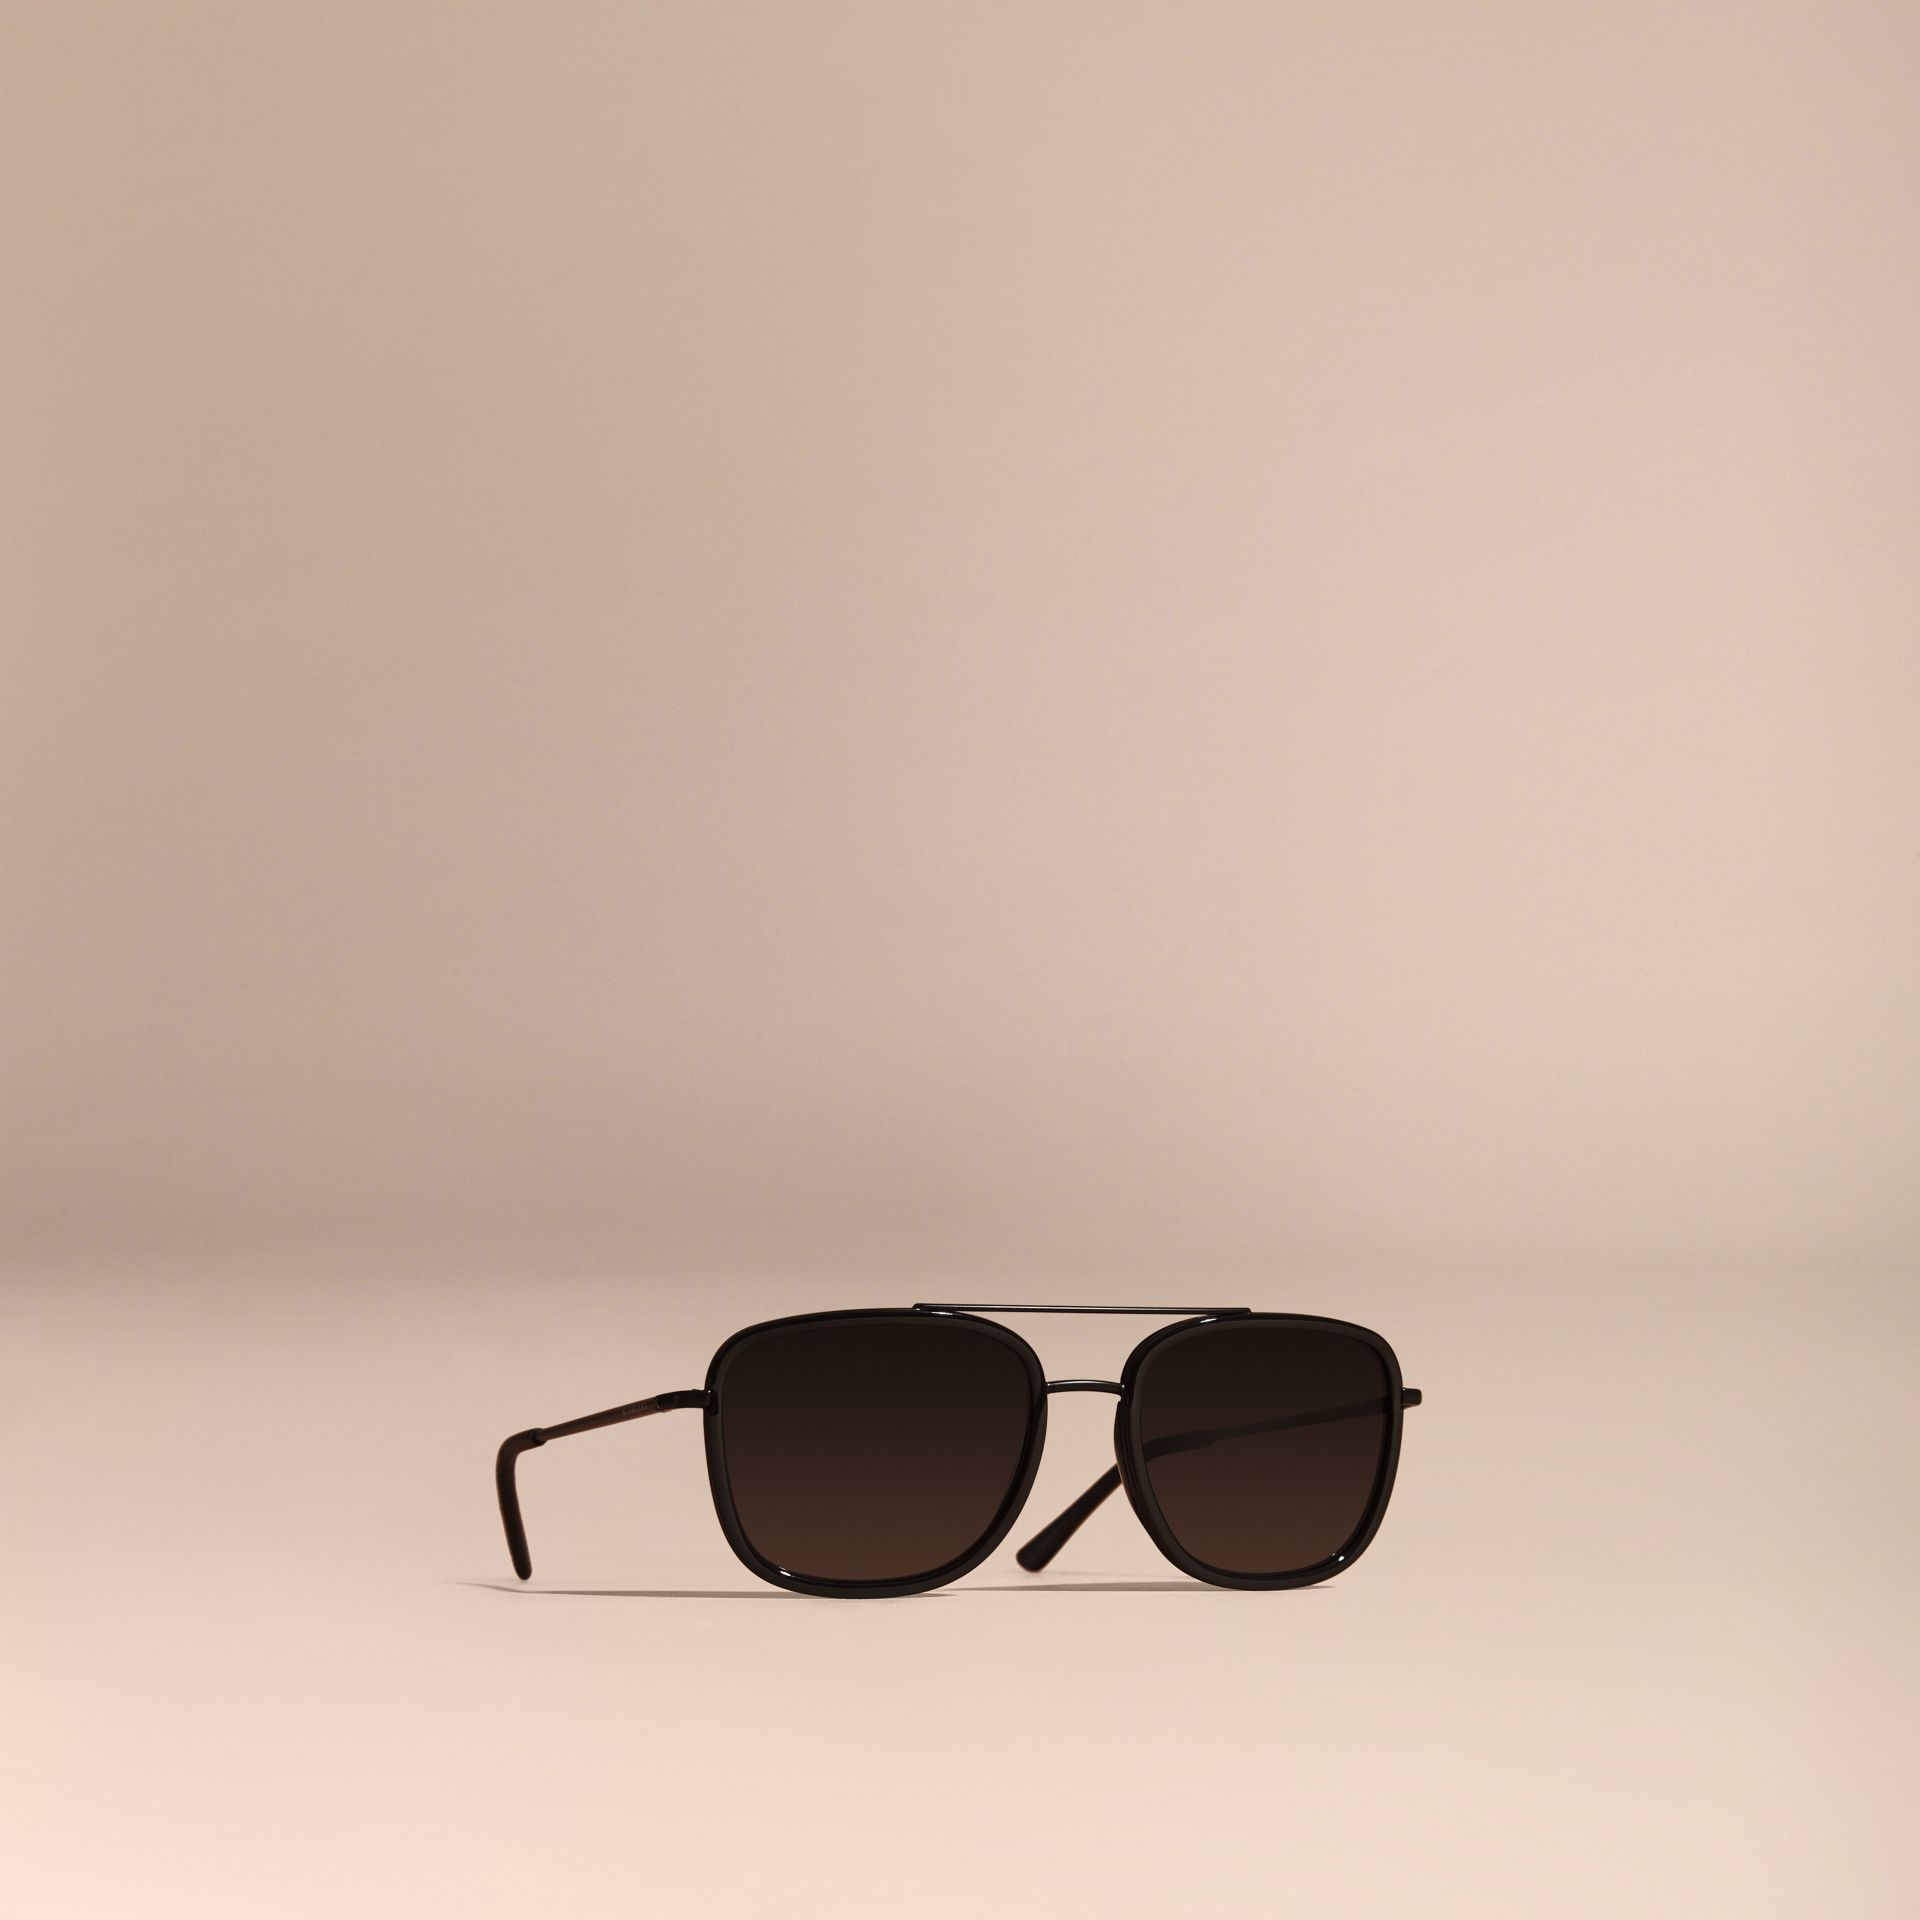 Black Square Frame Acetate and Leather Sunglasses Black - gallery image 1